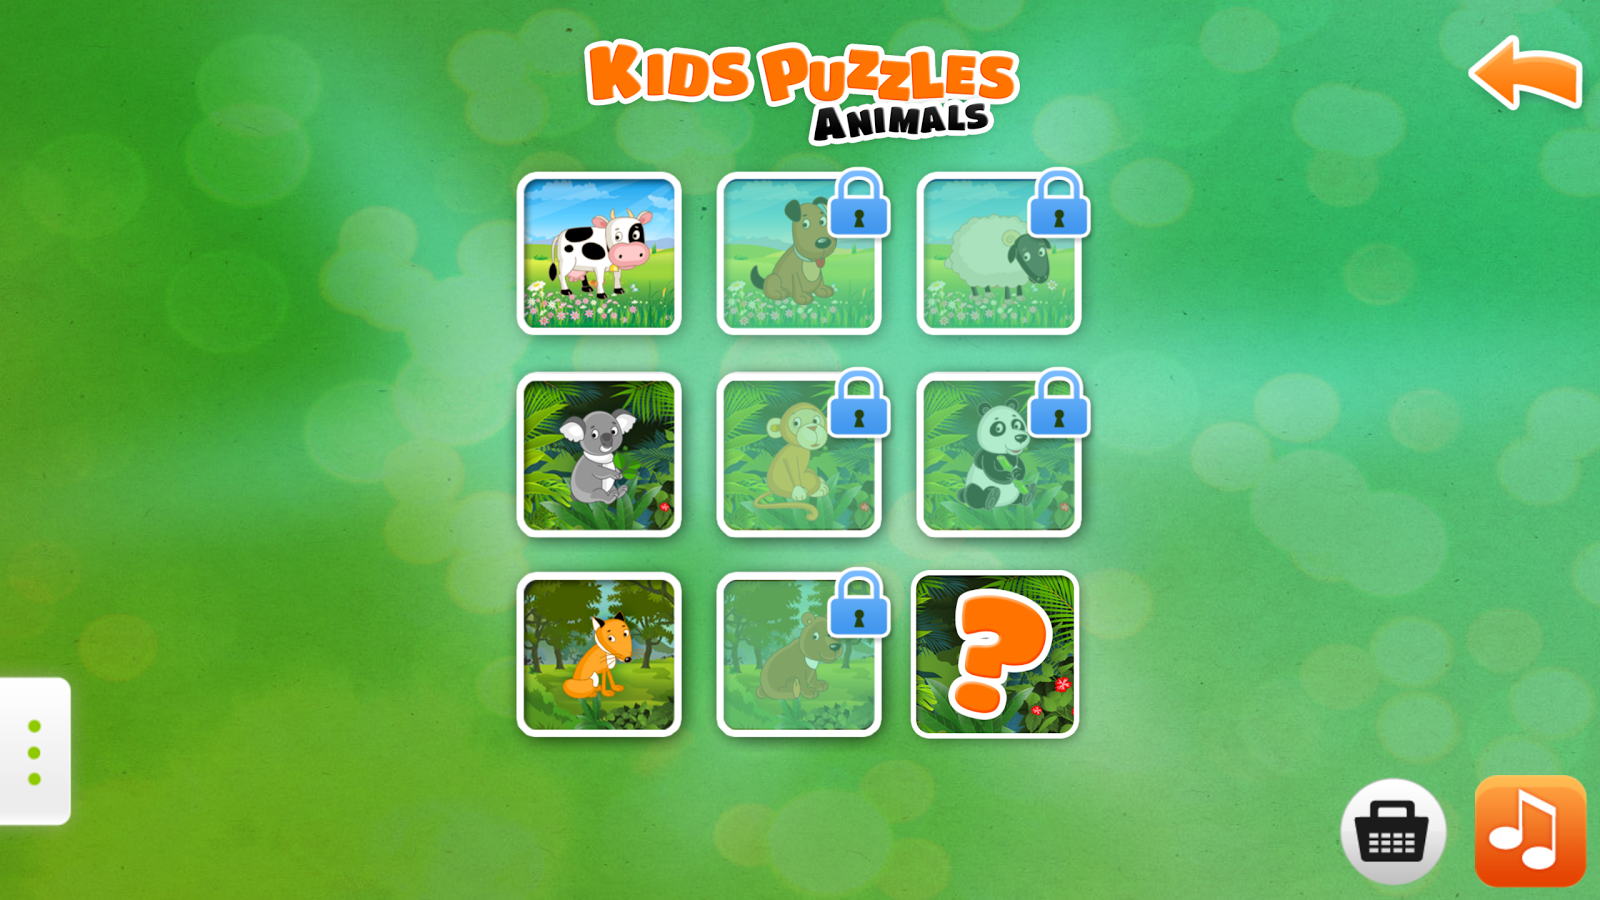 Kids Puzzle Games Animals Free - Android Apps on Google Play